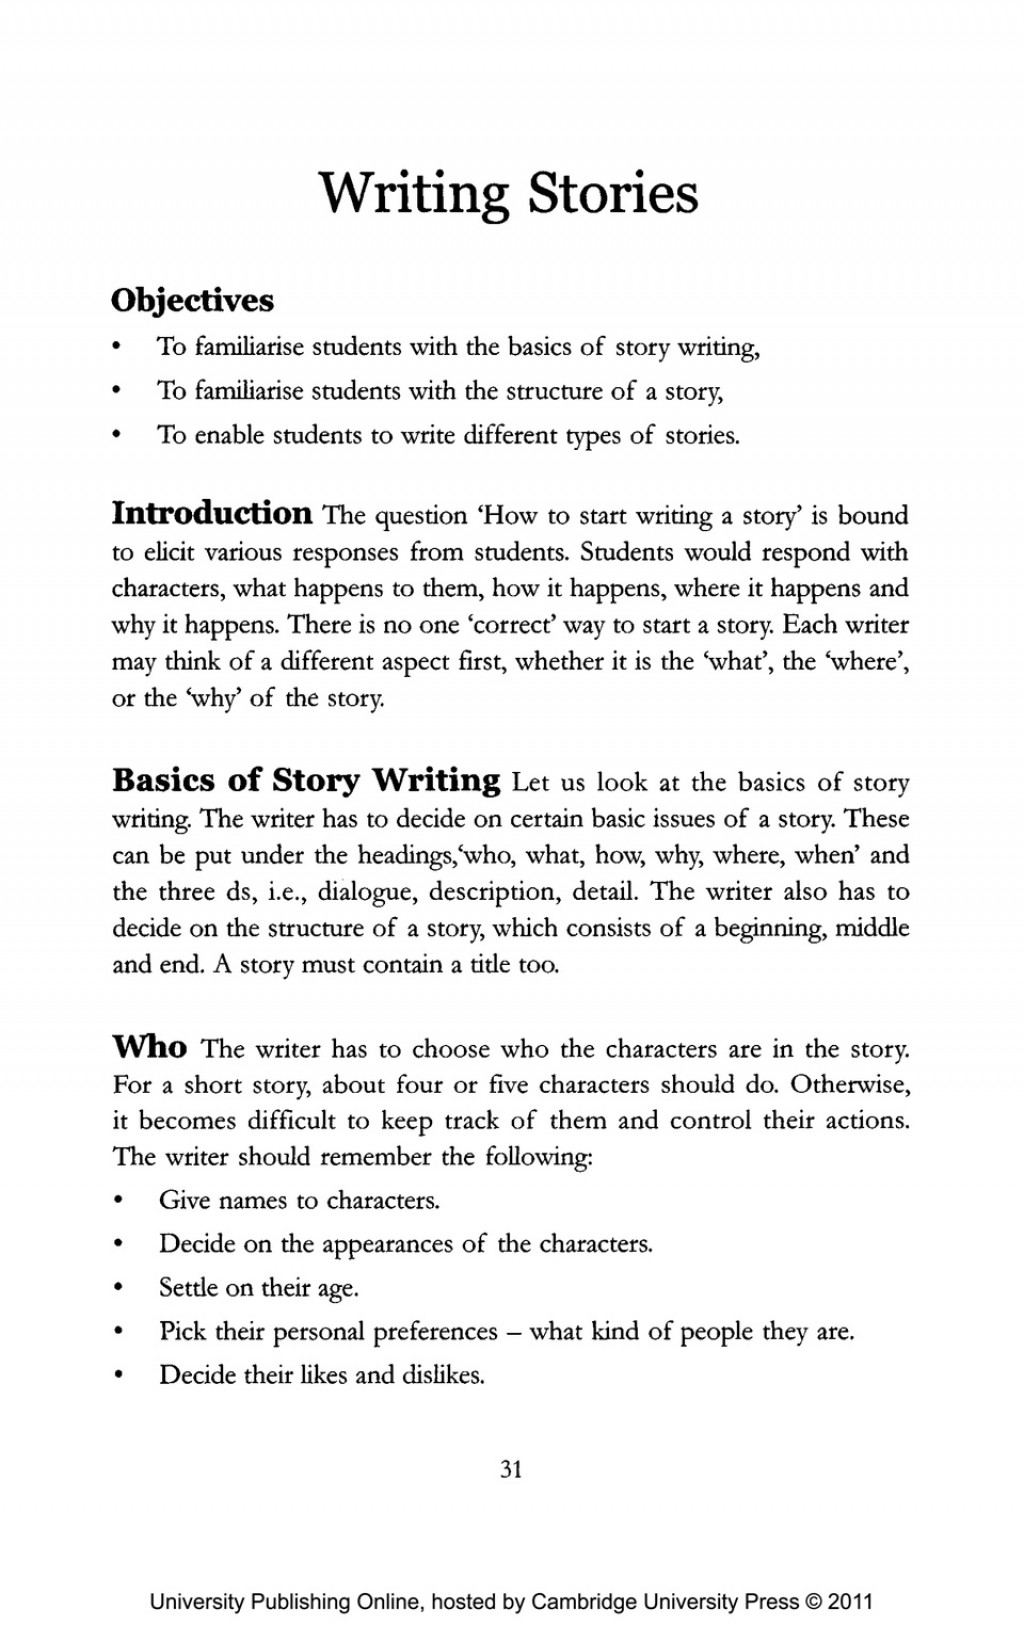 015 Short Stories In Essays Essay Example Dialogue Write Story How To Sample Research Paper 9788175968714c2 Abstrac Comparison An Introduction For Title Good Conclusion The Of Impressive Analysis Examples And One Act Plays Fiction Large